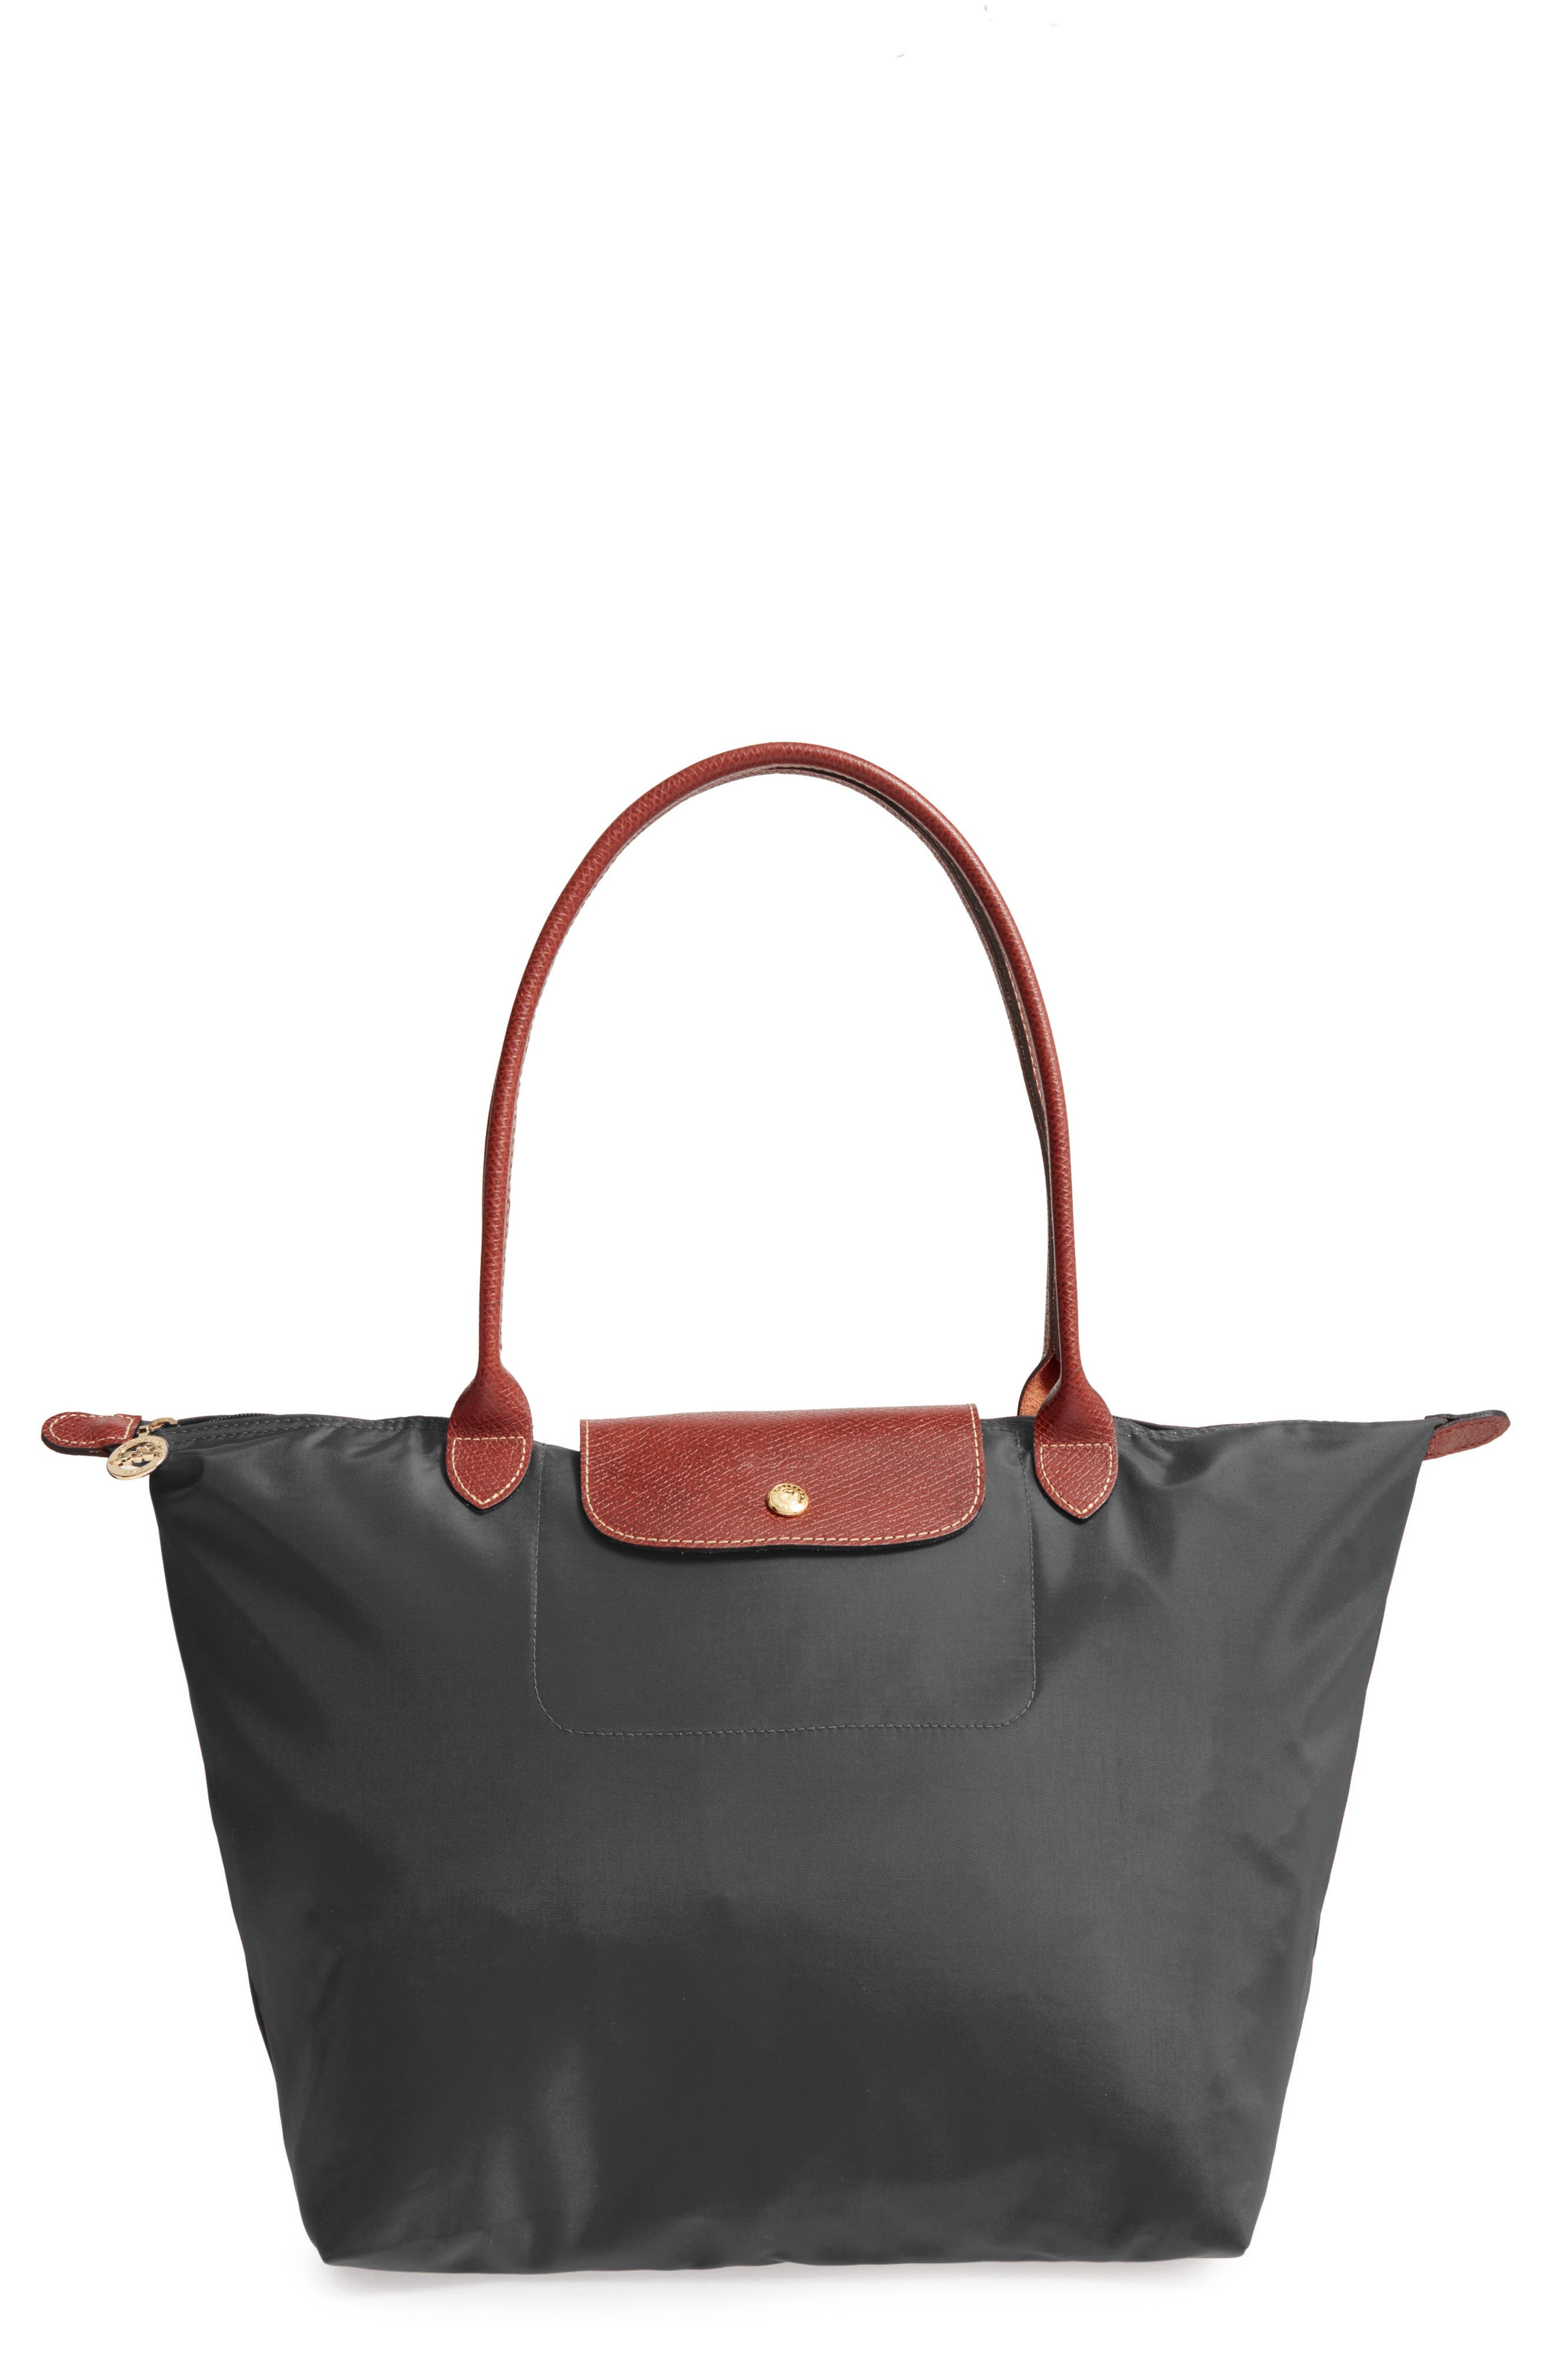 LONGCHAMP Le Pliage Extra-Large Duffel Travel Tote Bag in Black